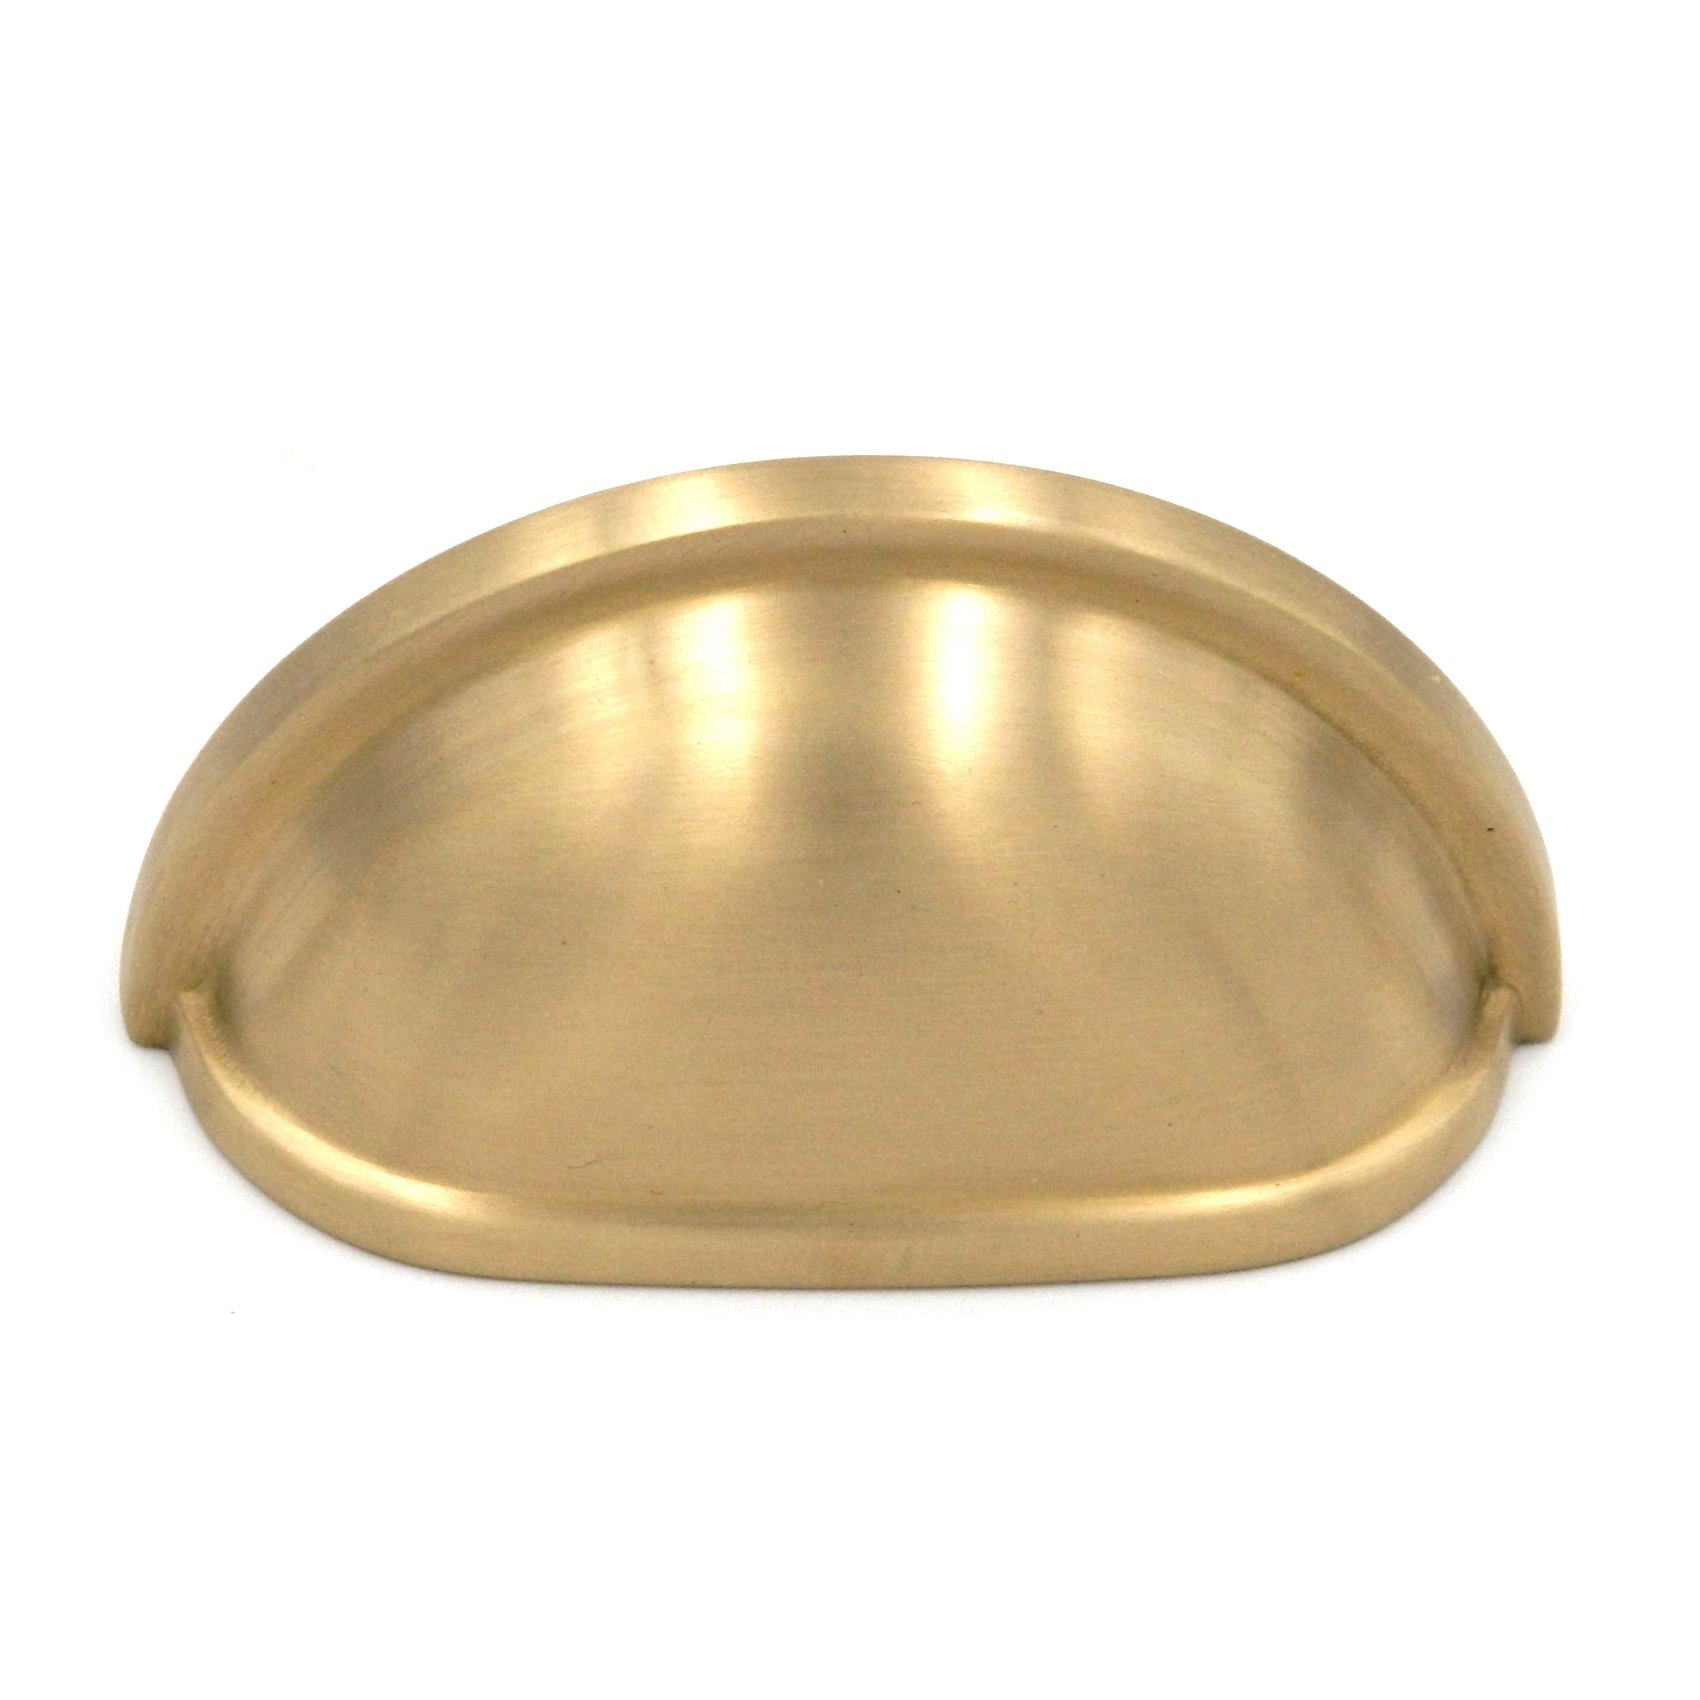 Belwith Keeler Power & Beauty Cabinet Cup Pull K43-04 Solid Brass 3''cc Satin Brass